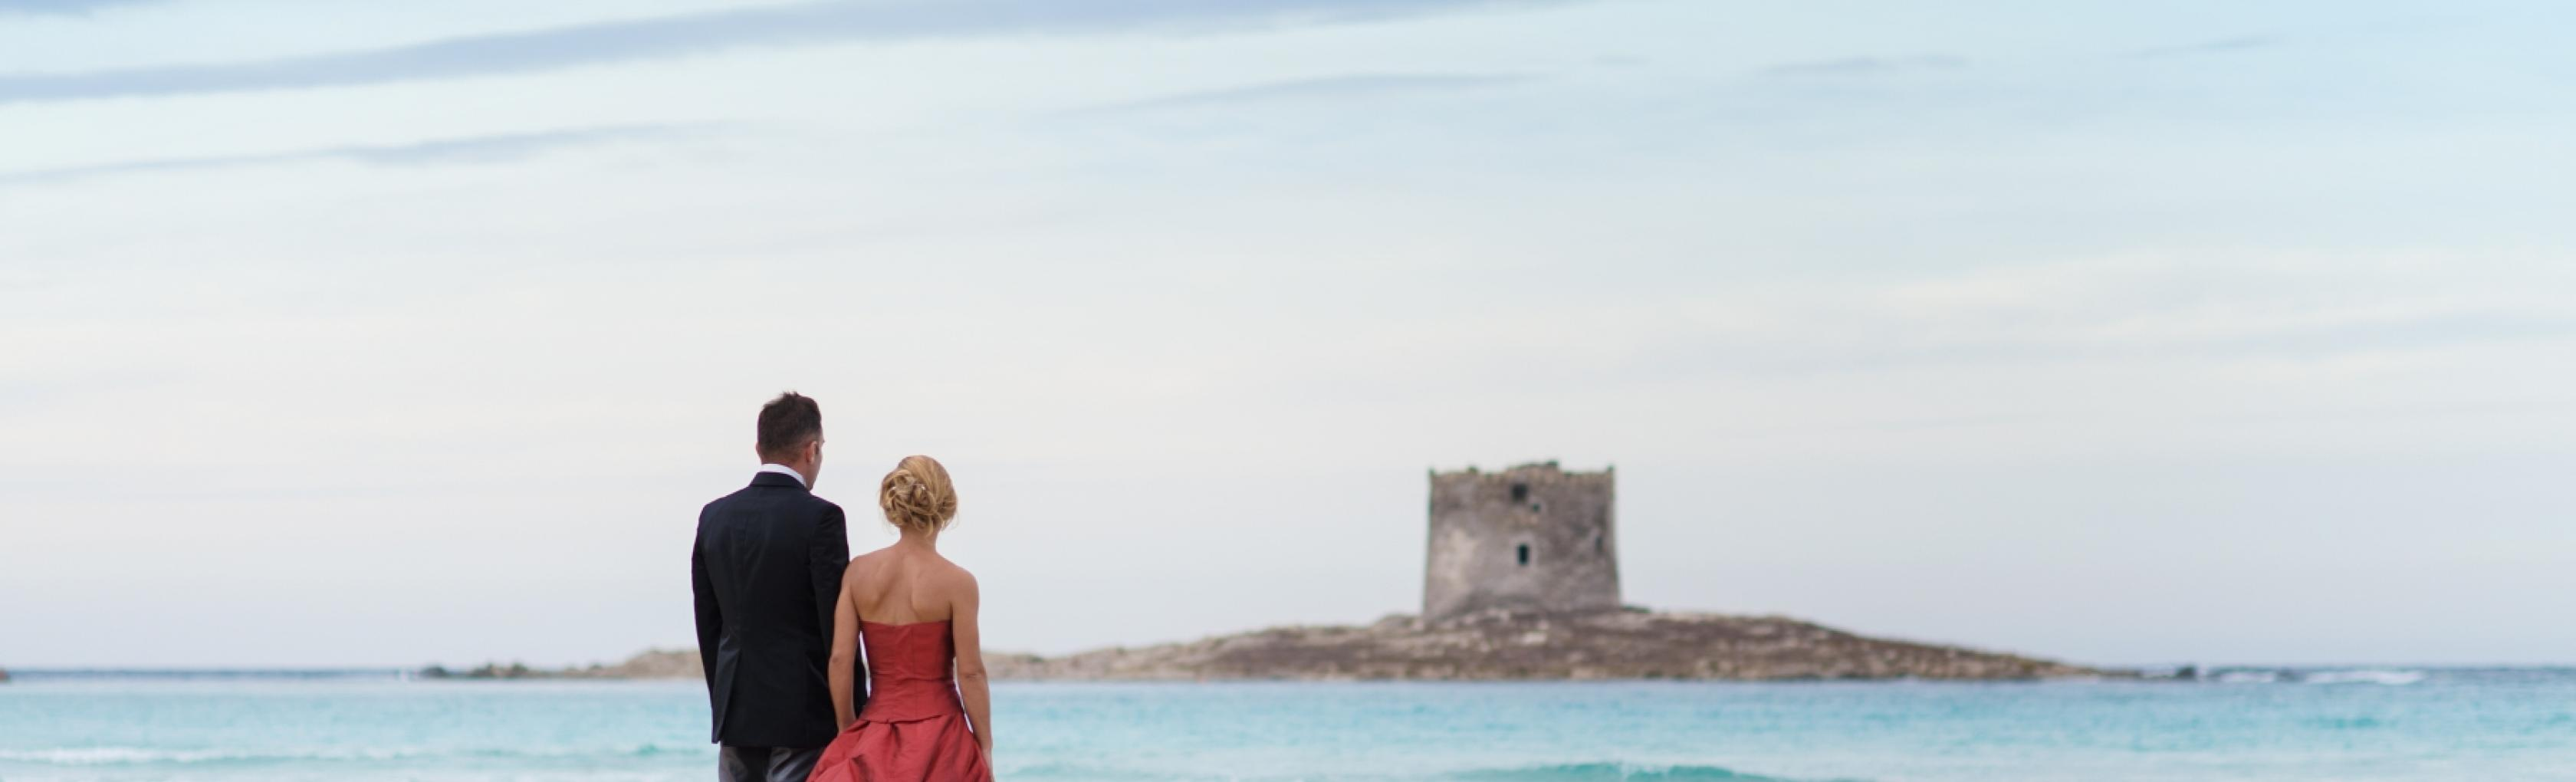 Wedding in Sardegna - Stintino